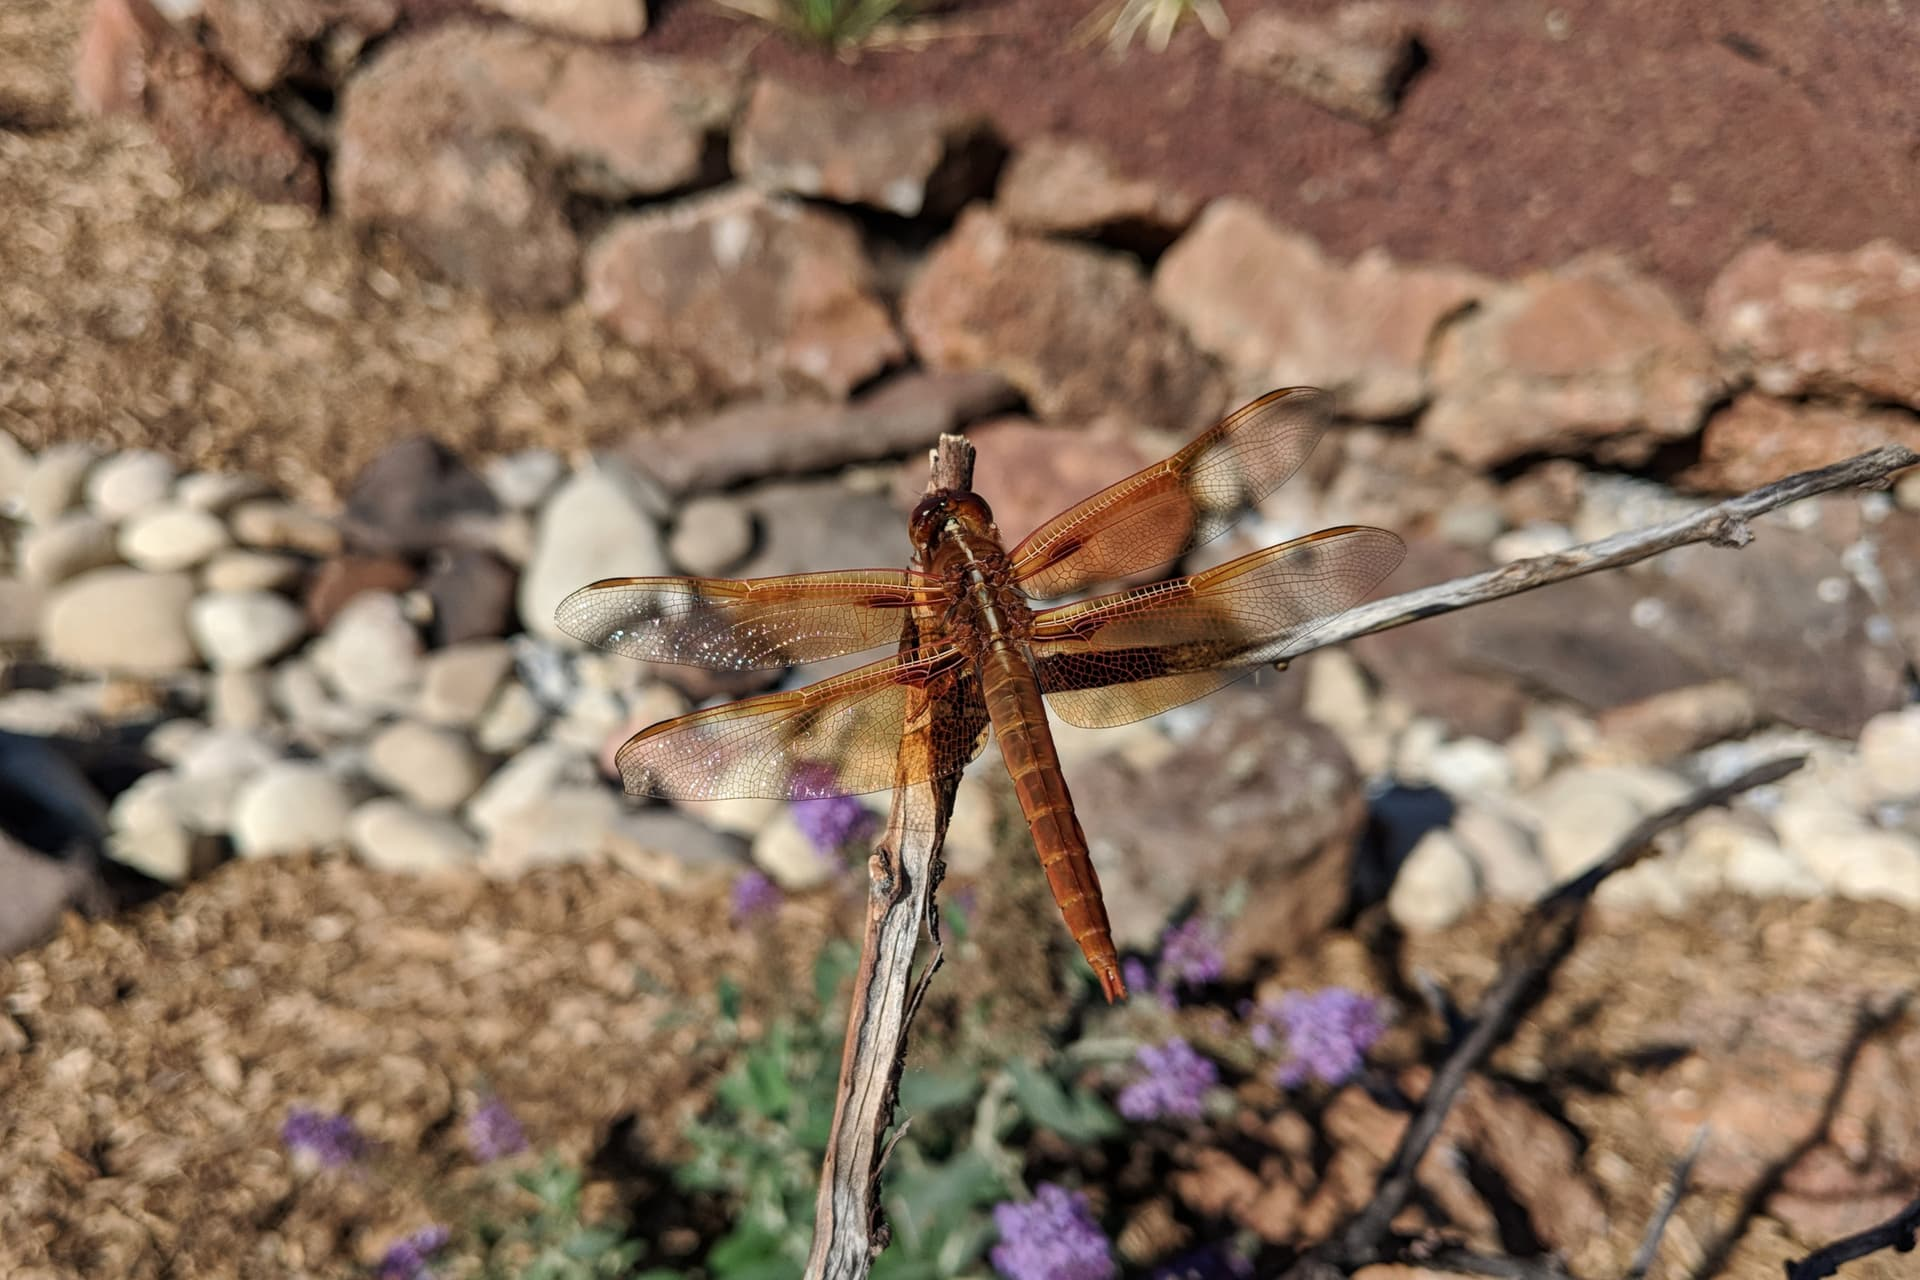 A large, red-orange dragonfly rests on a tree branch.